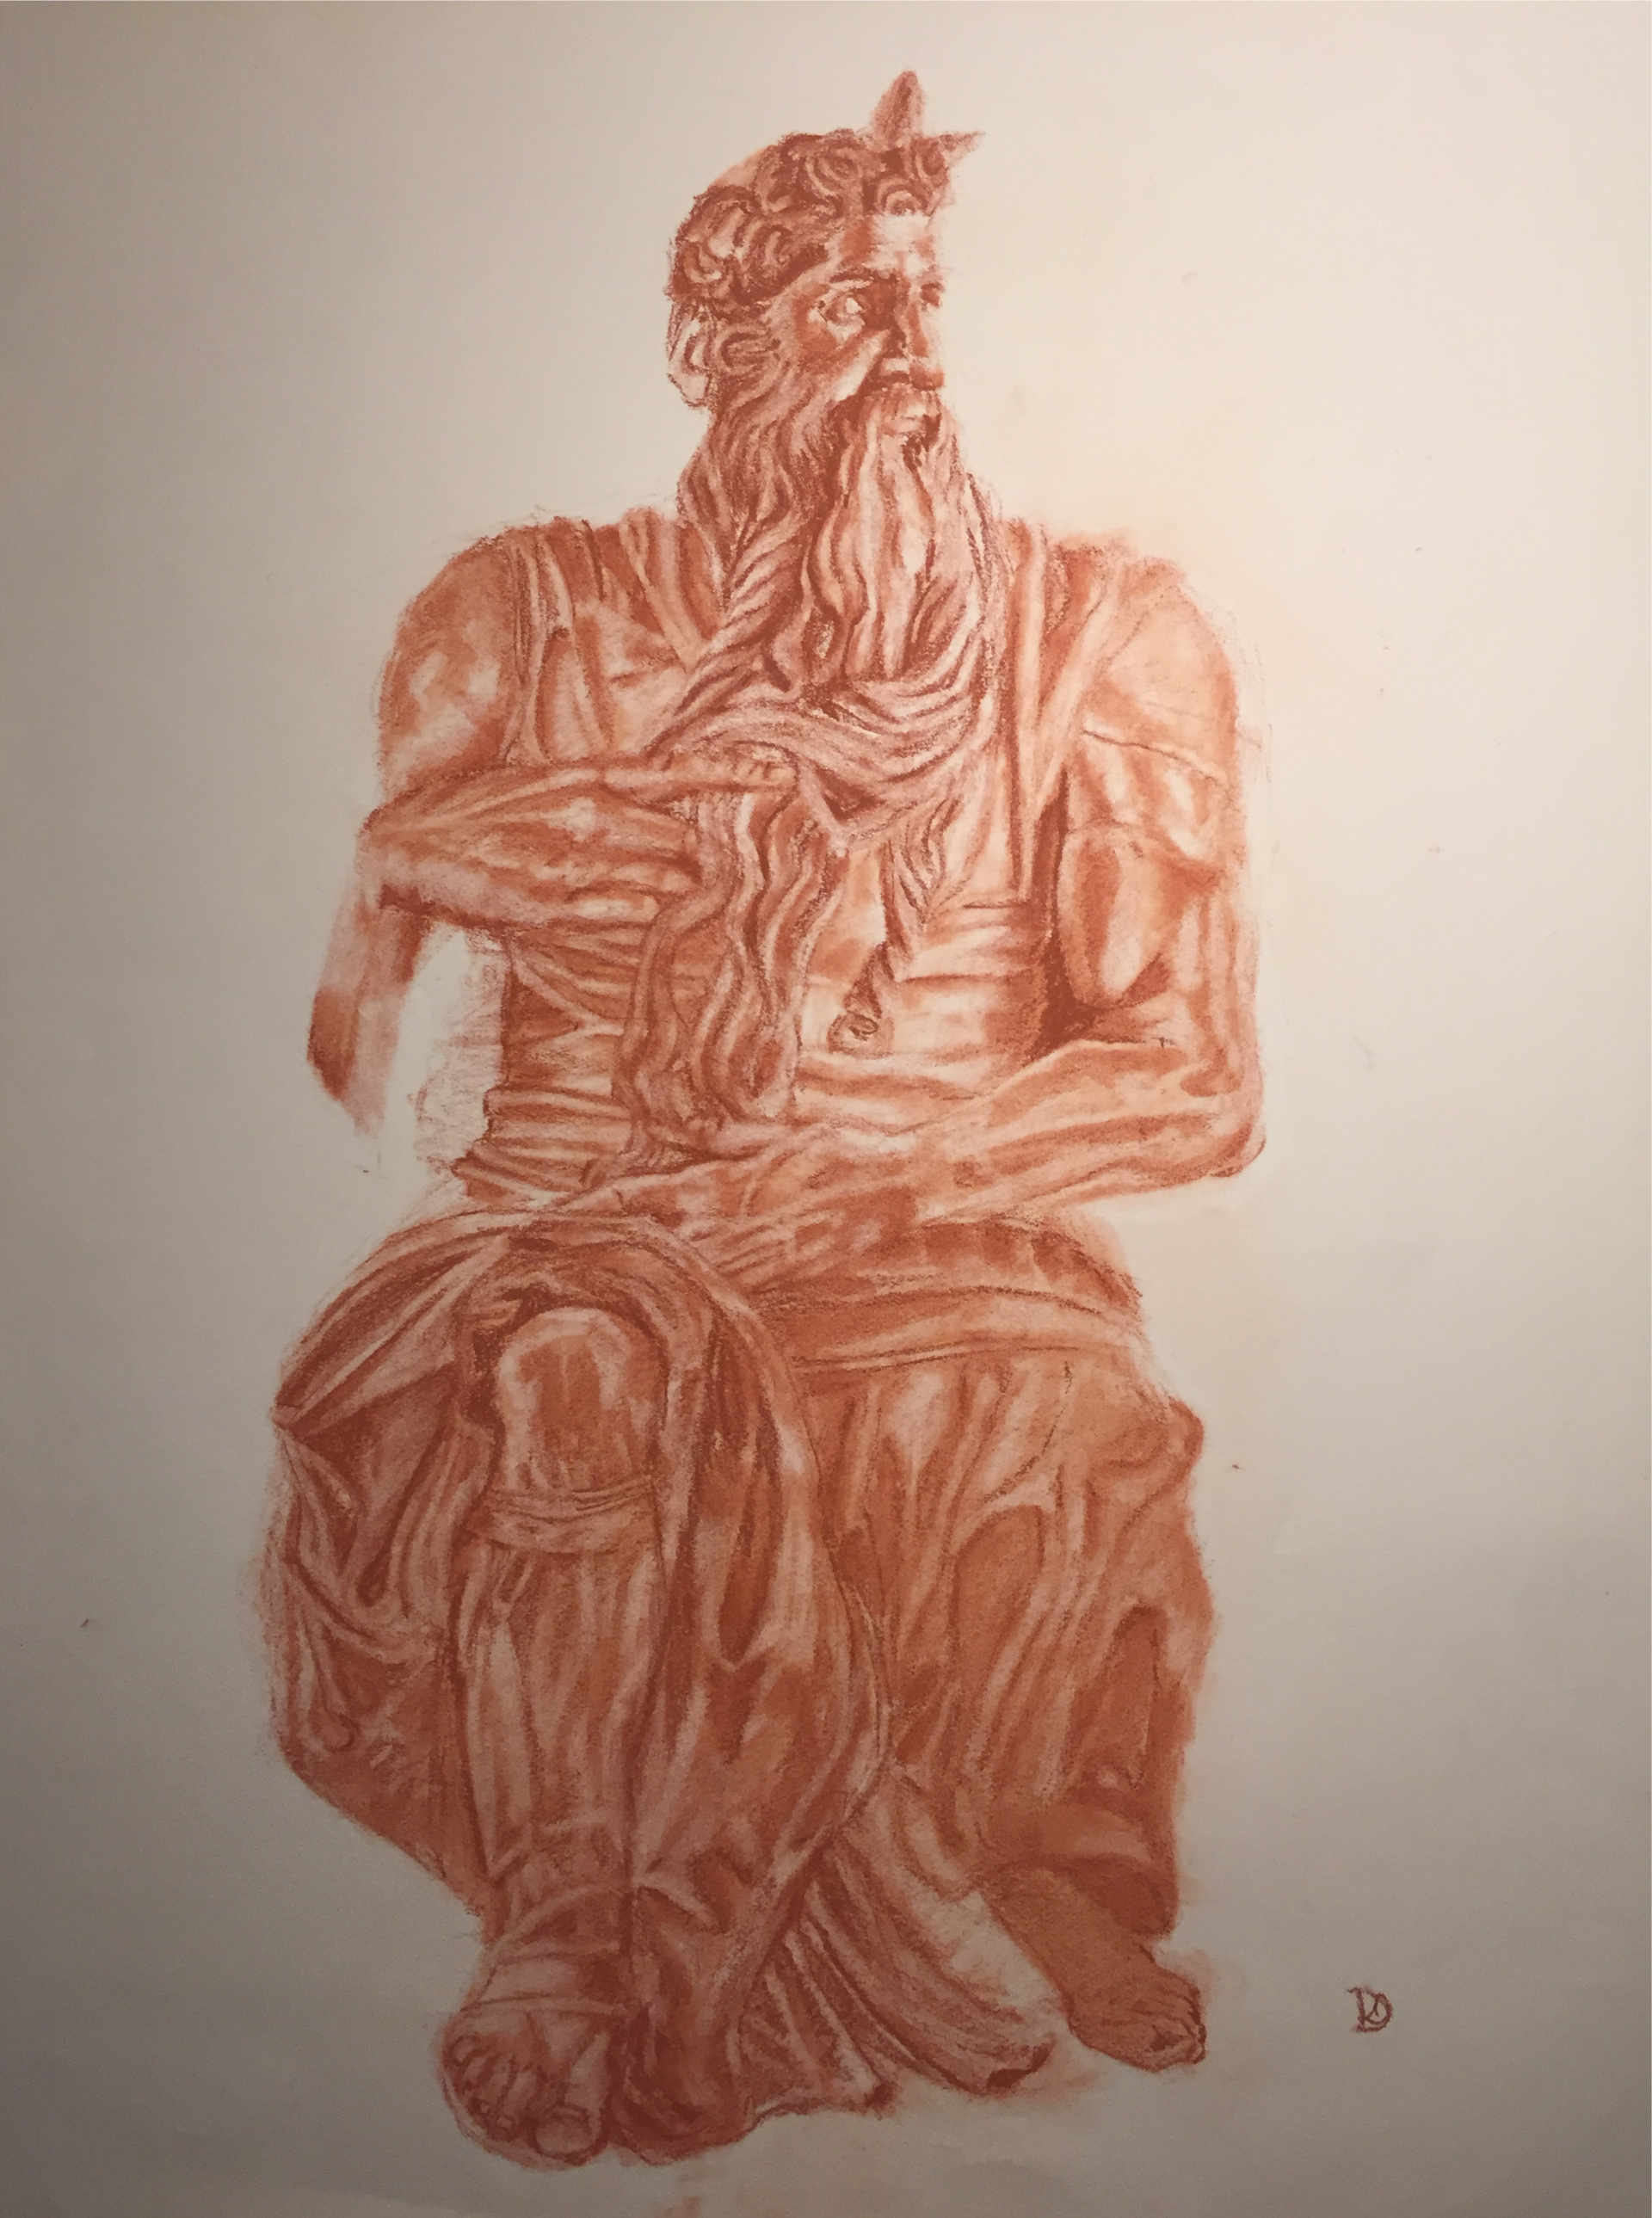 Study of Michelangelo's Moses